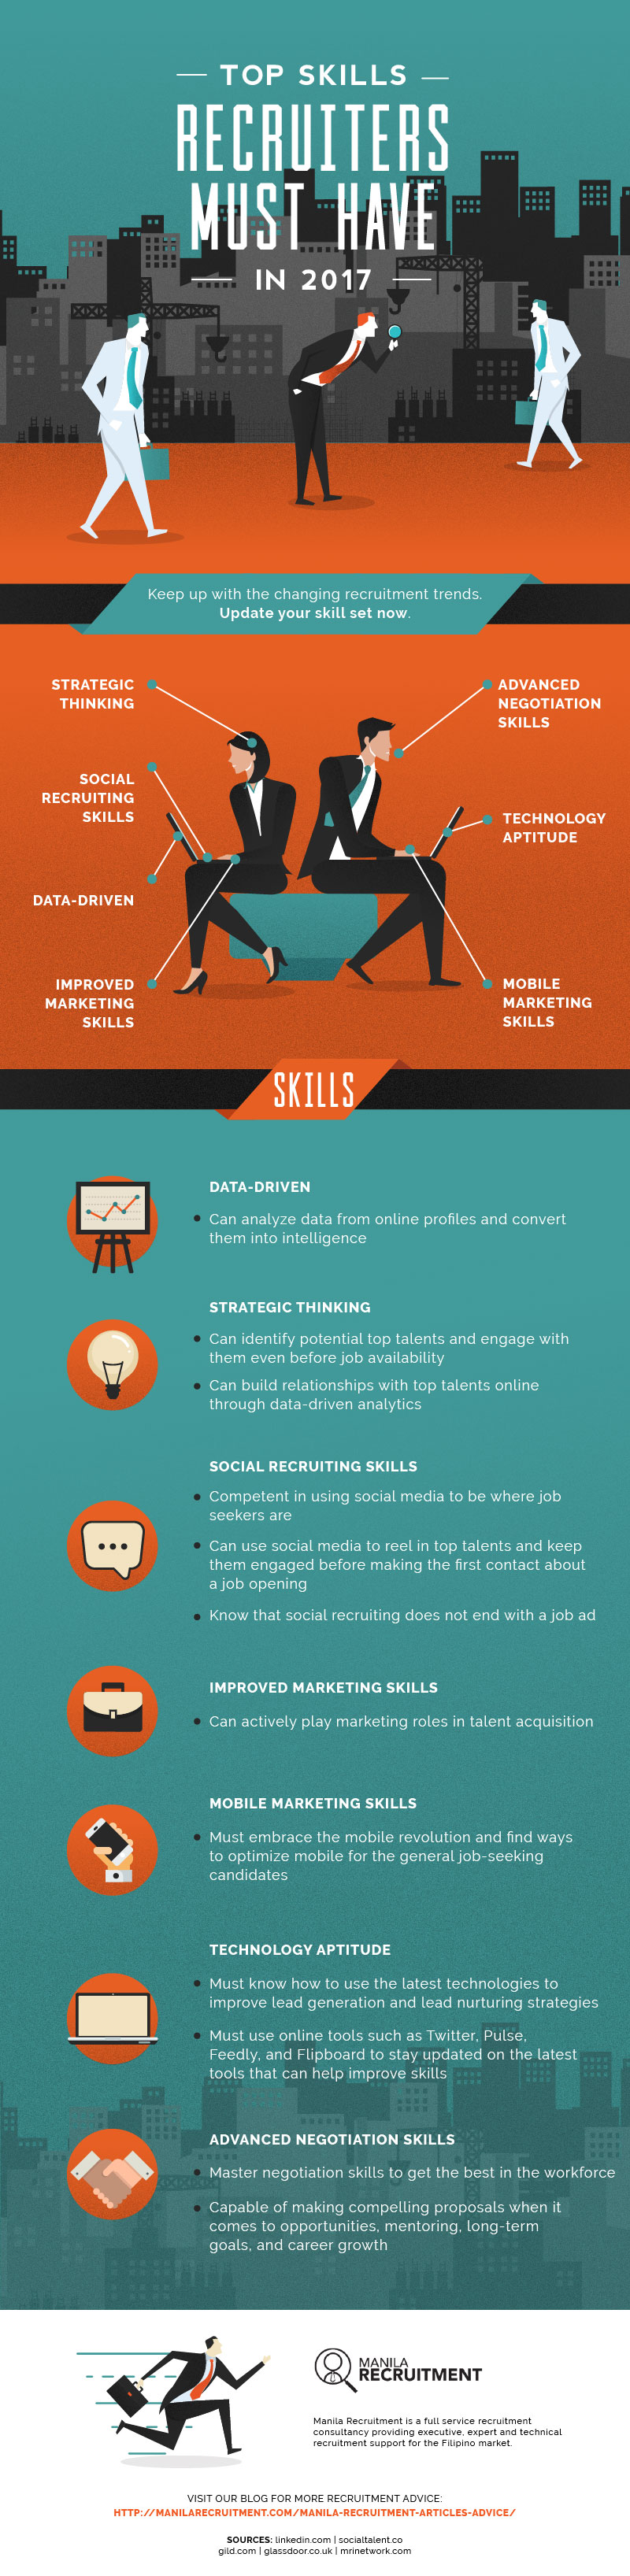 top-skills-recruiters-must-have-in-2017-infographics